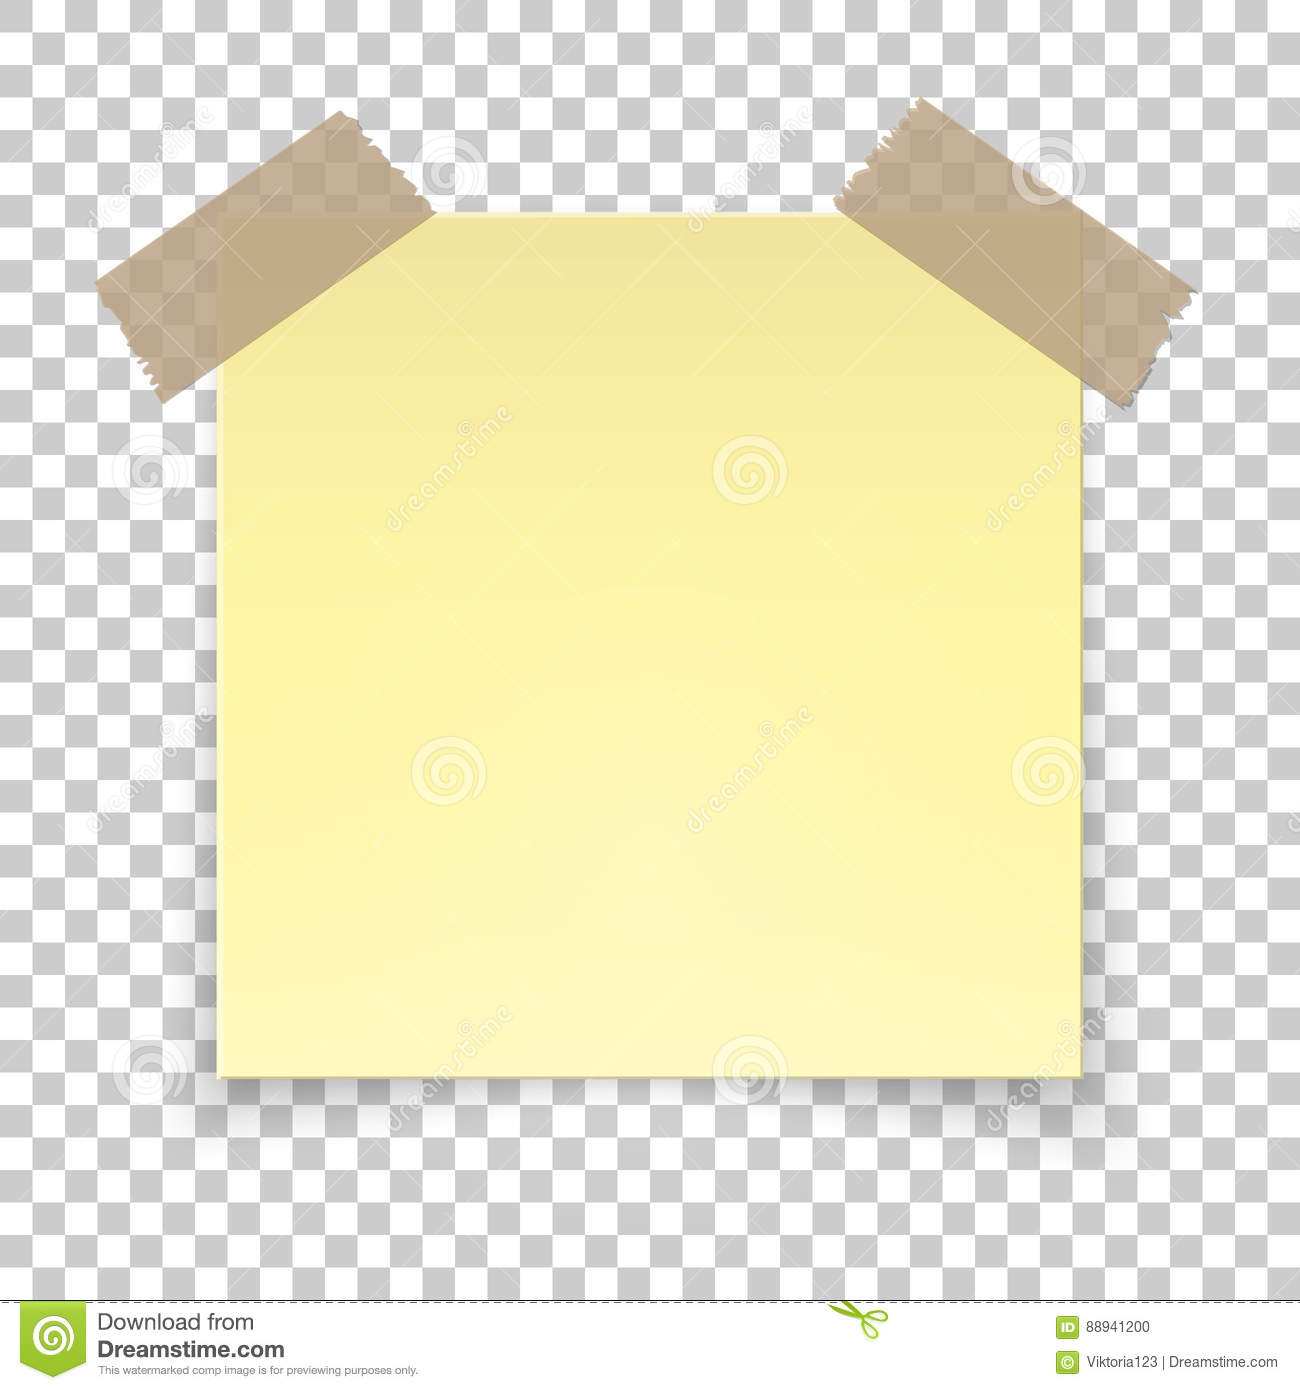 Realistic Sticky Tape On Transparent Background, Empty Yellow Note Template  For Your Design. Vector